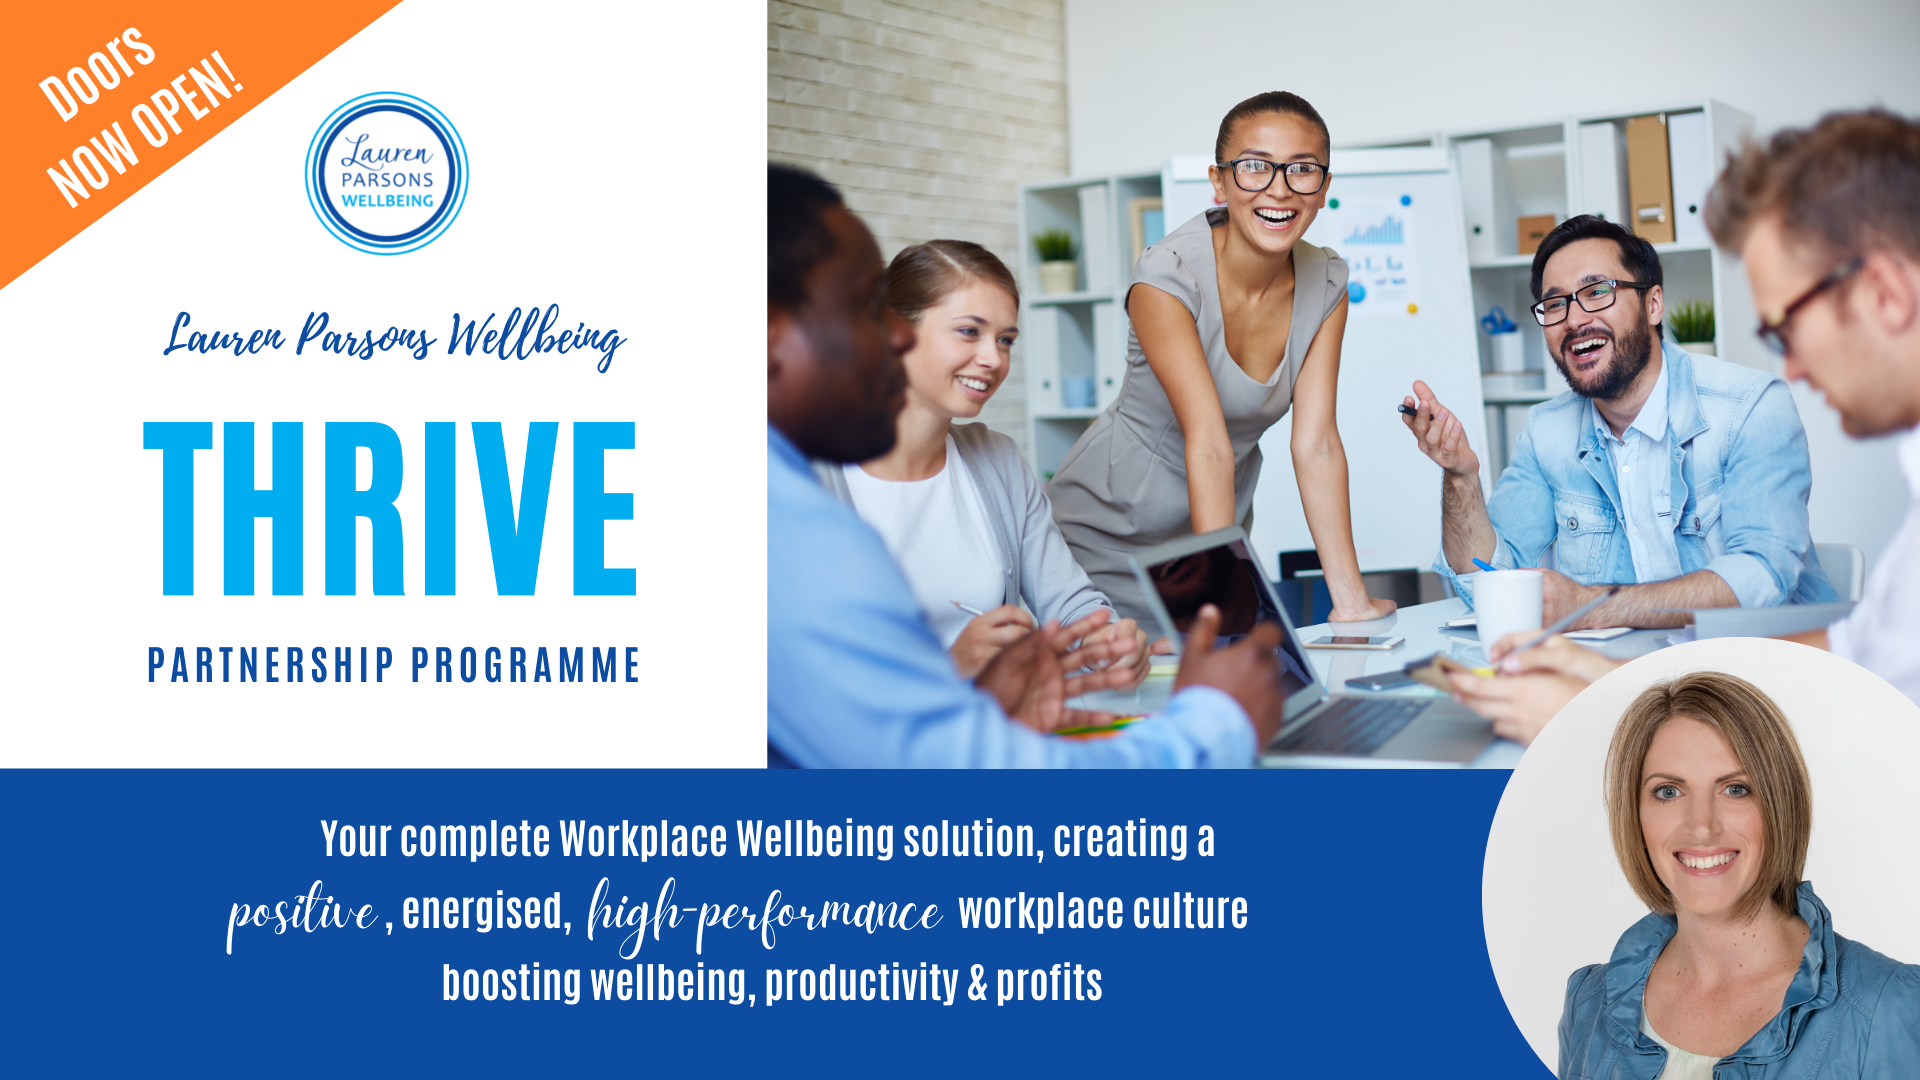 THRIVE Partnership Programme with Lauren Parsons Wellbeing (2)